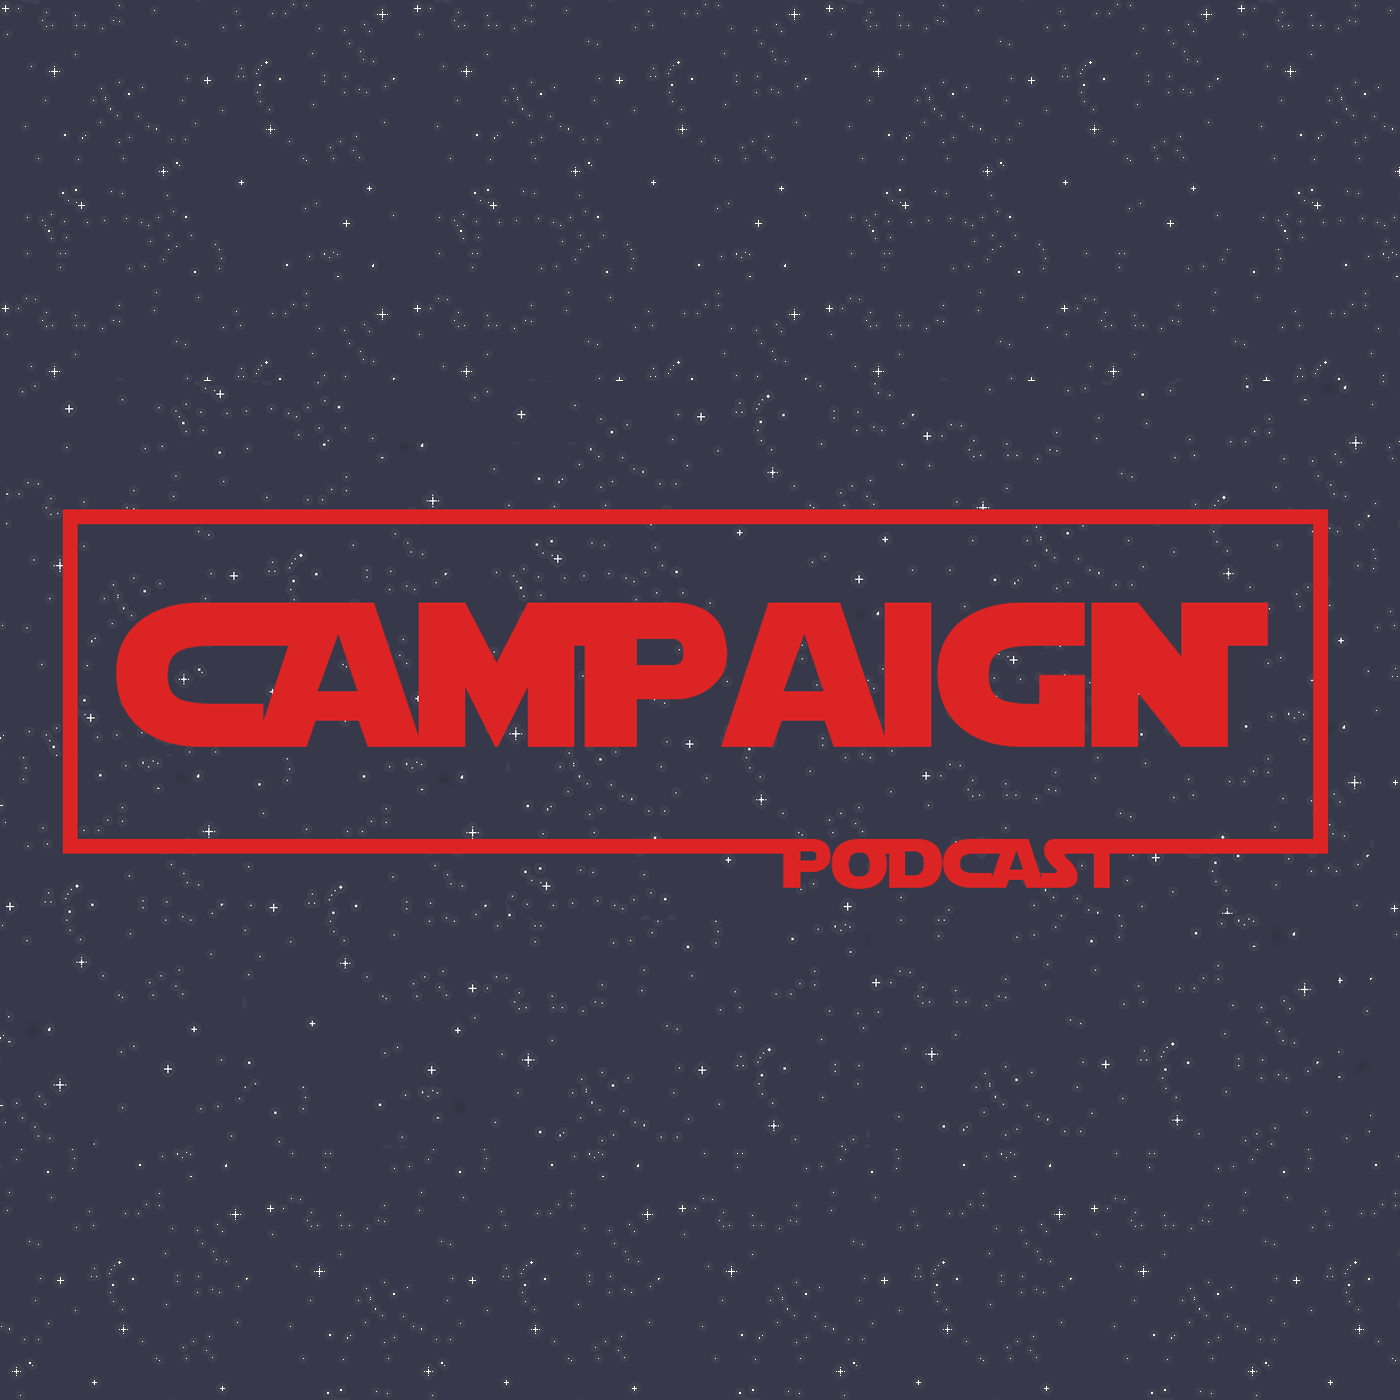 The Campaign Podcast